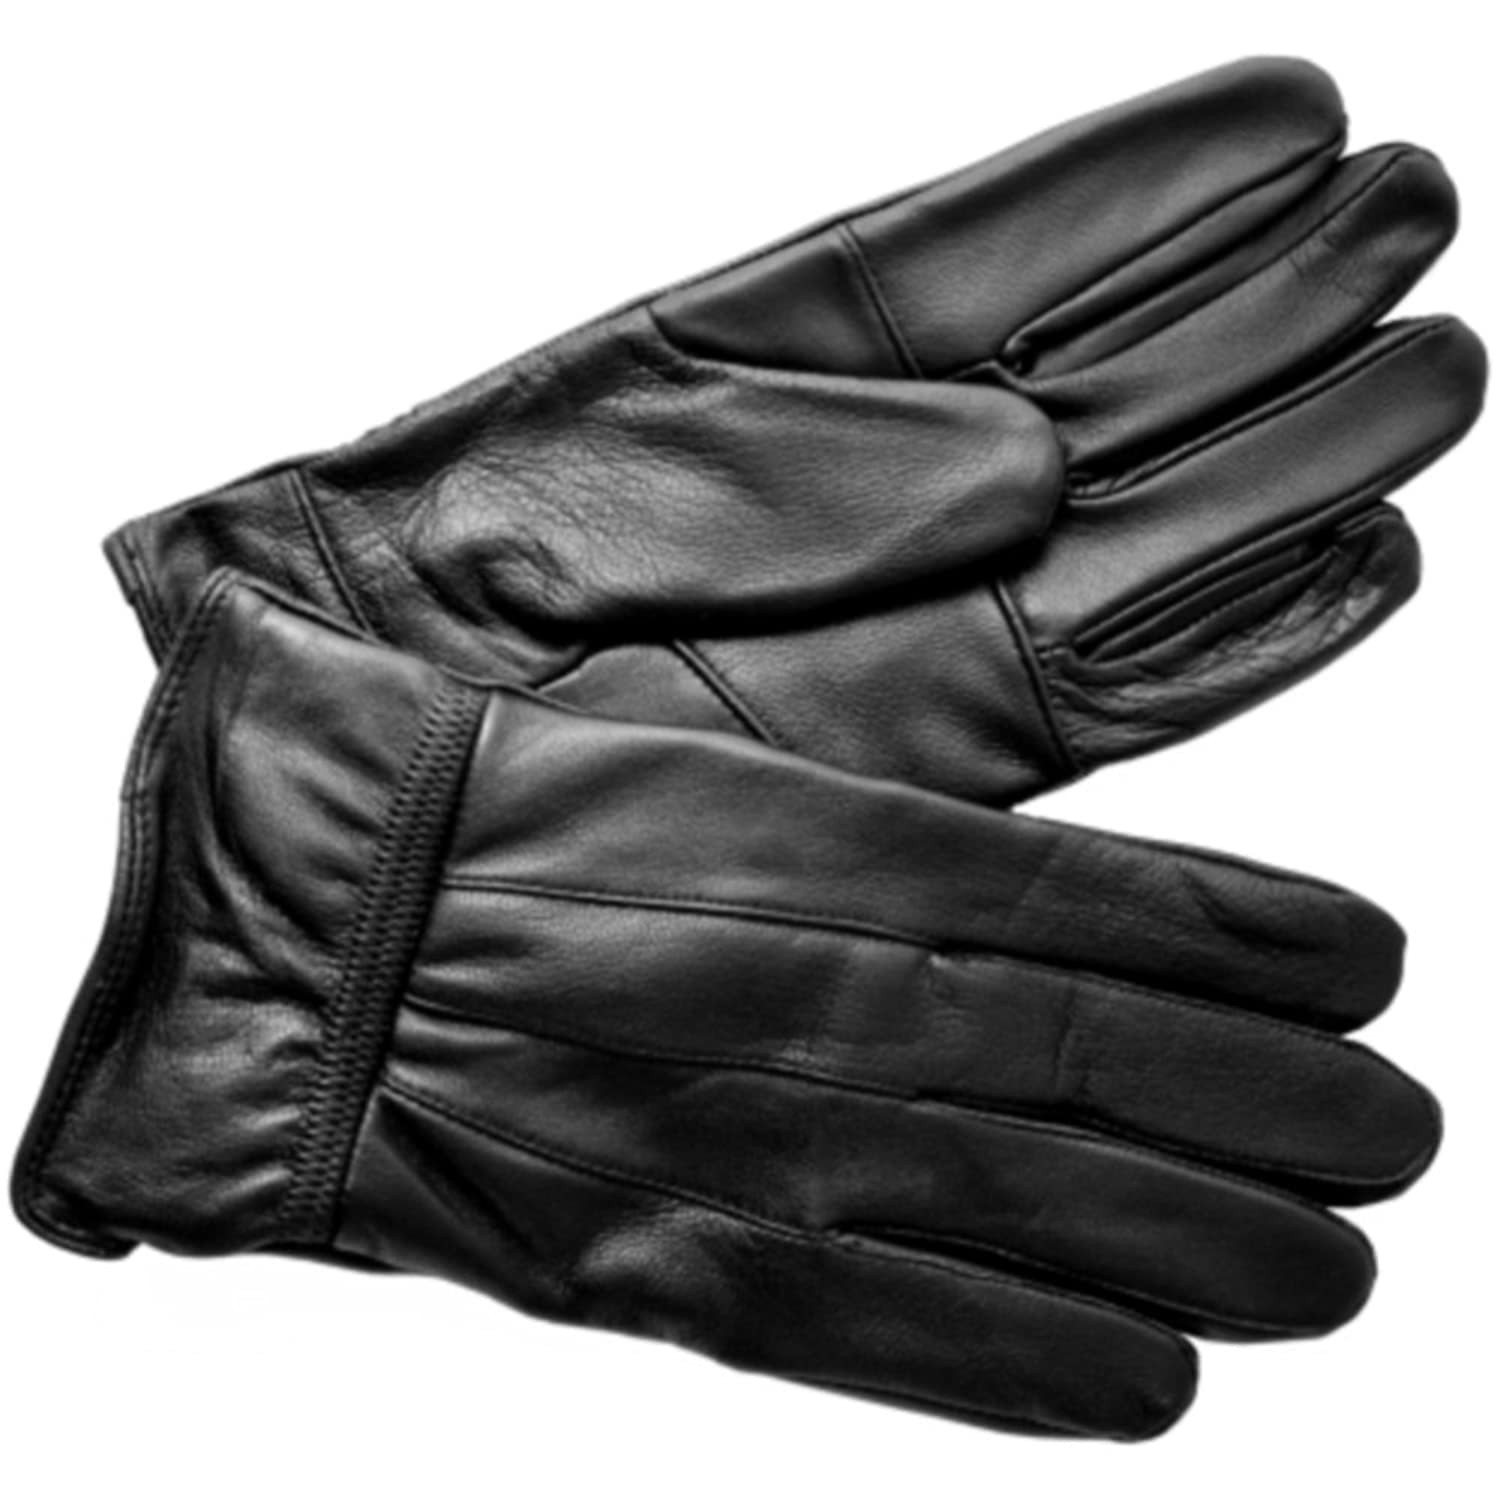 Driving gloves benefits - Leather Emporium Mens New Black Soft Leather Driving Gloves 8922 Medium Amazon Co Uk Clothing